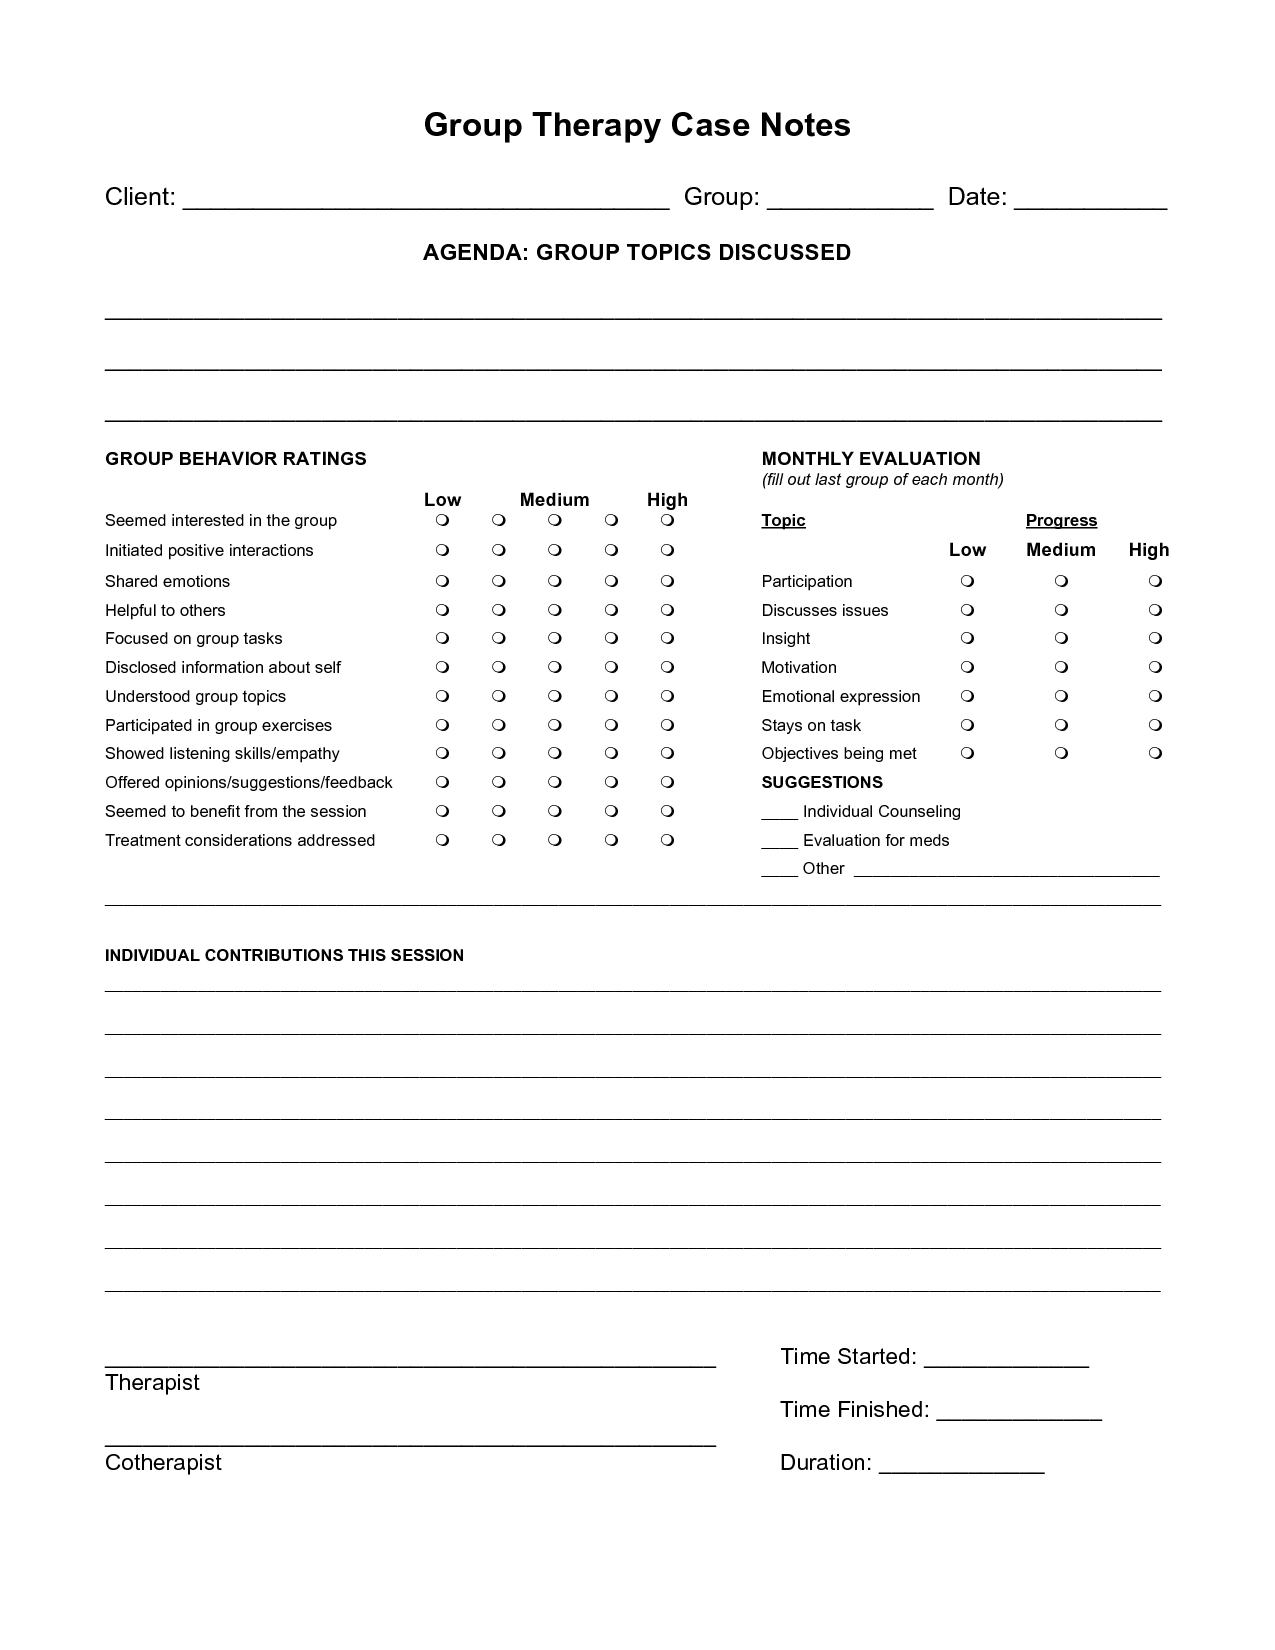 alcohol management plan template - free case note templates group therapy case notes for